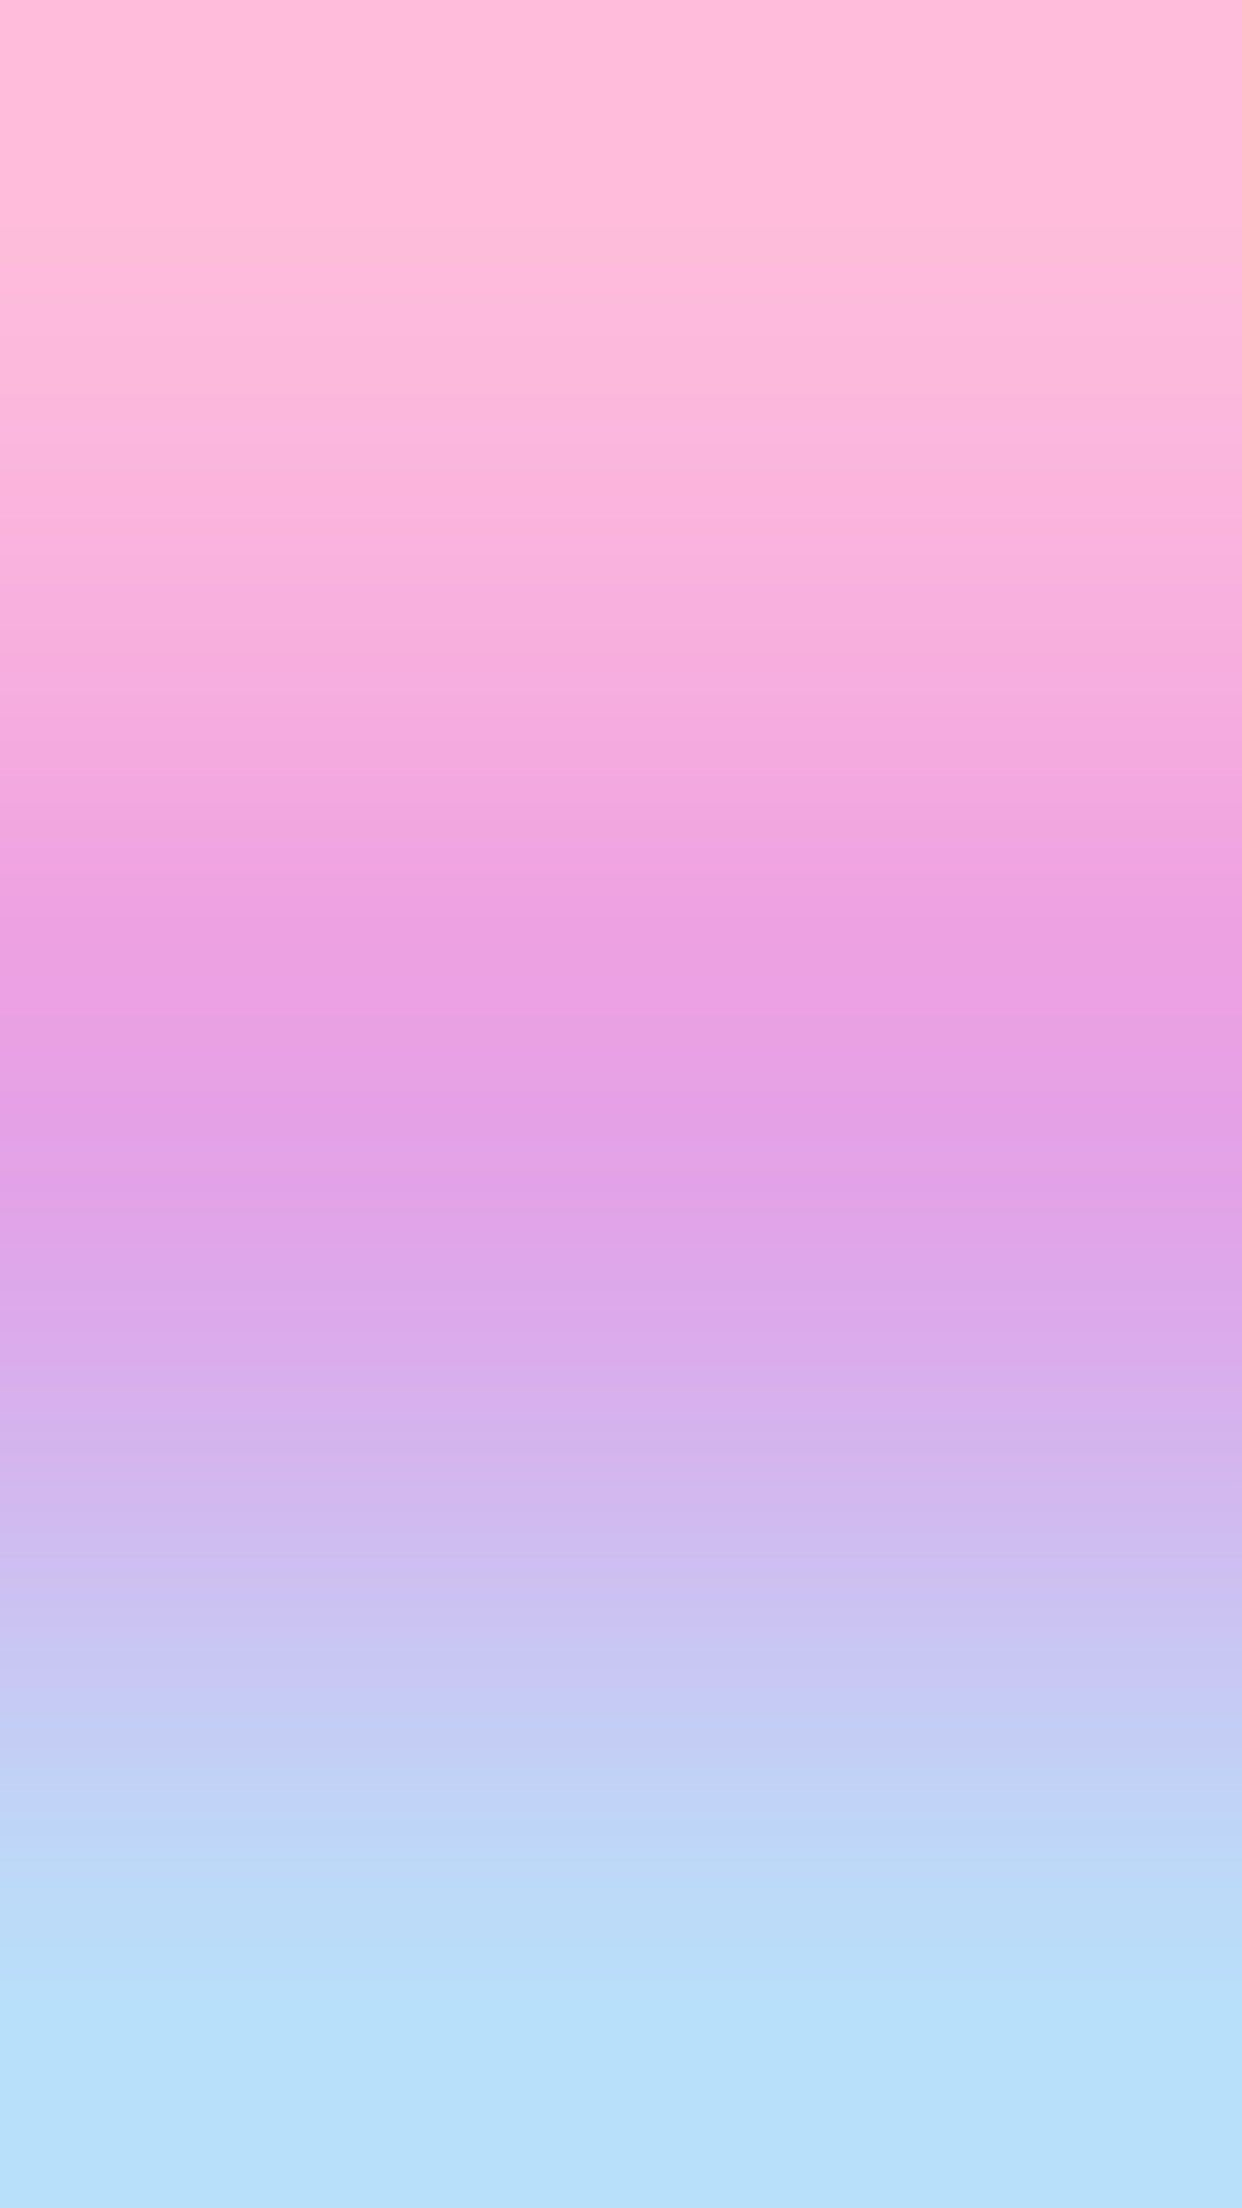 Pastel Blue And Pink Wallpapers Top Free Pastel Blue And Pink